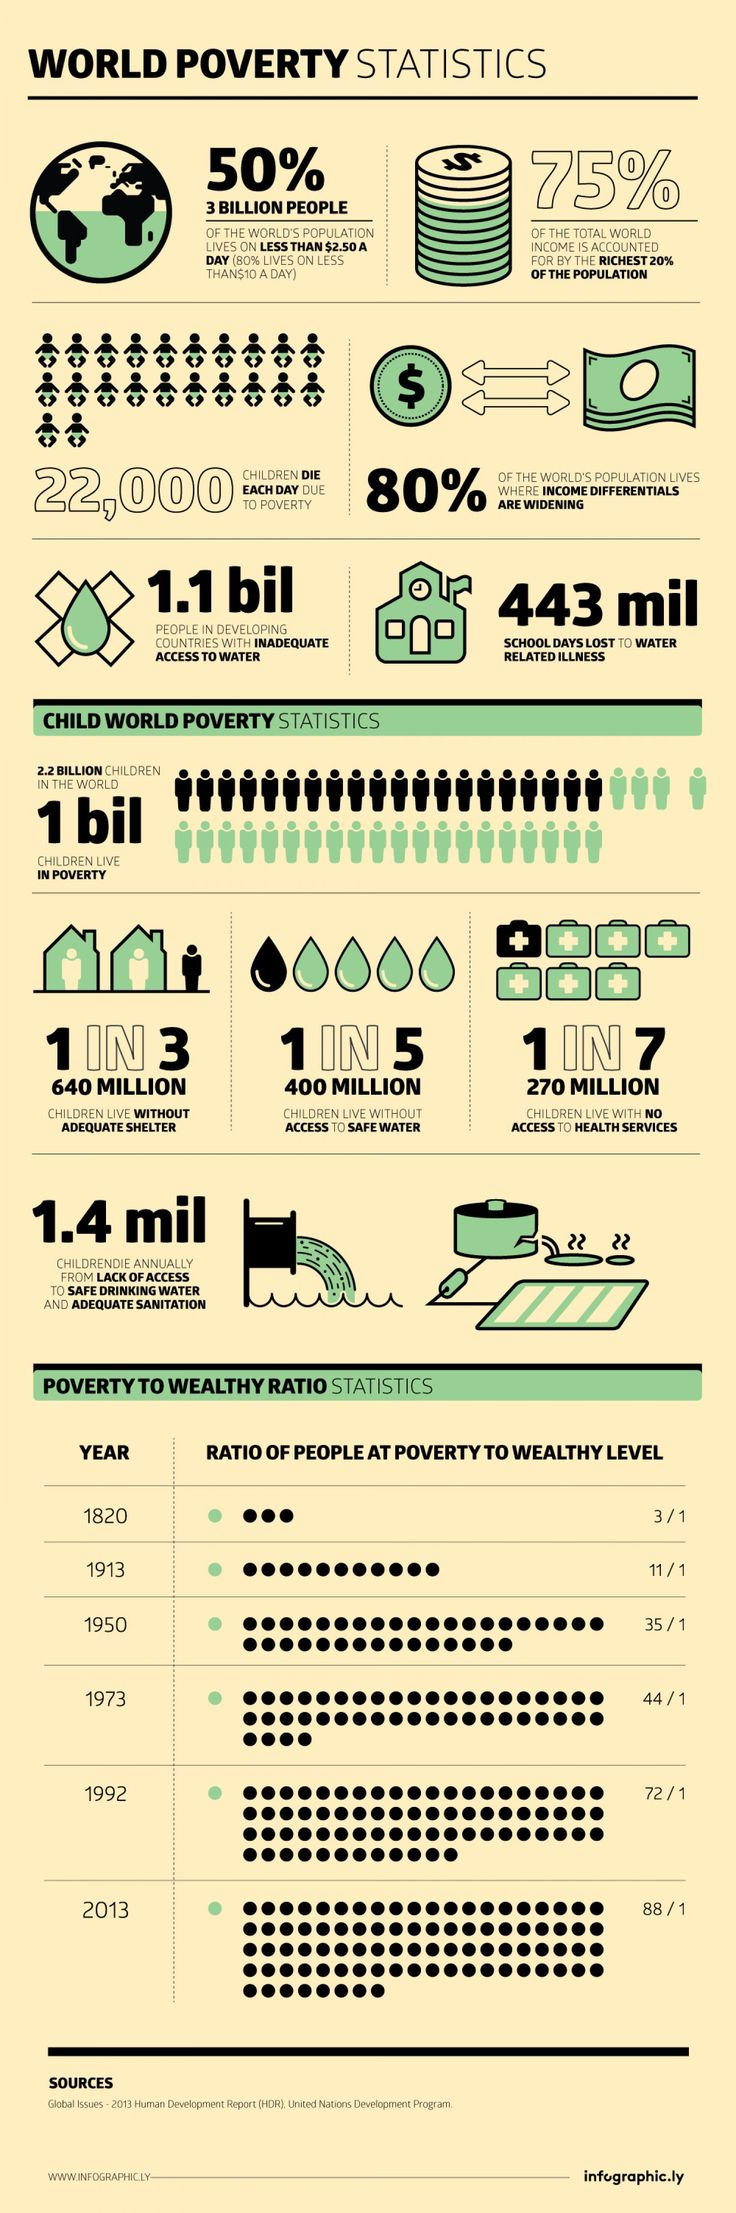 Global issues: some hard hitting facts and statistics on poverty presented in the Human Development Report (HDR) by the United Nations Development Program | infographic | Dubai